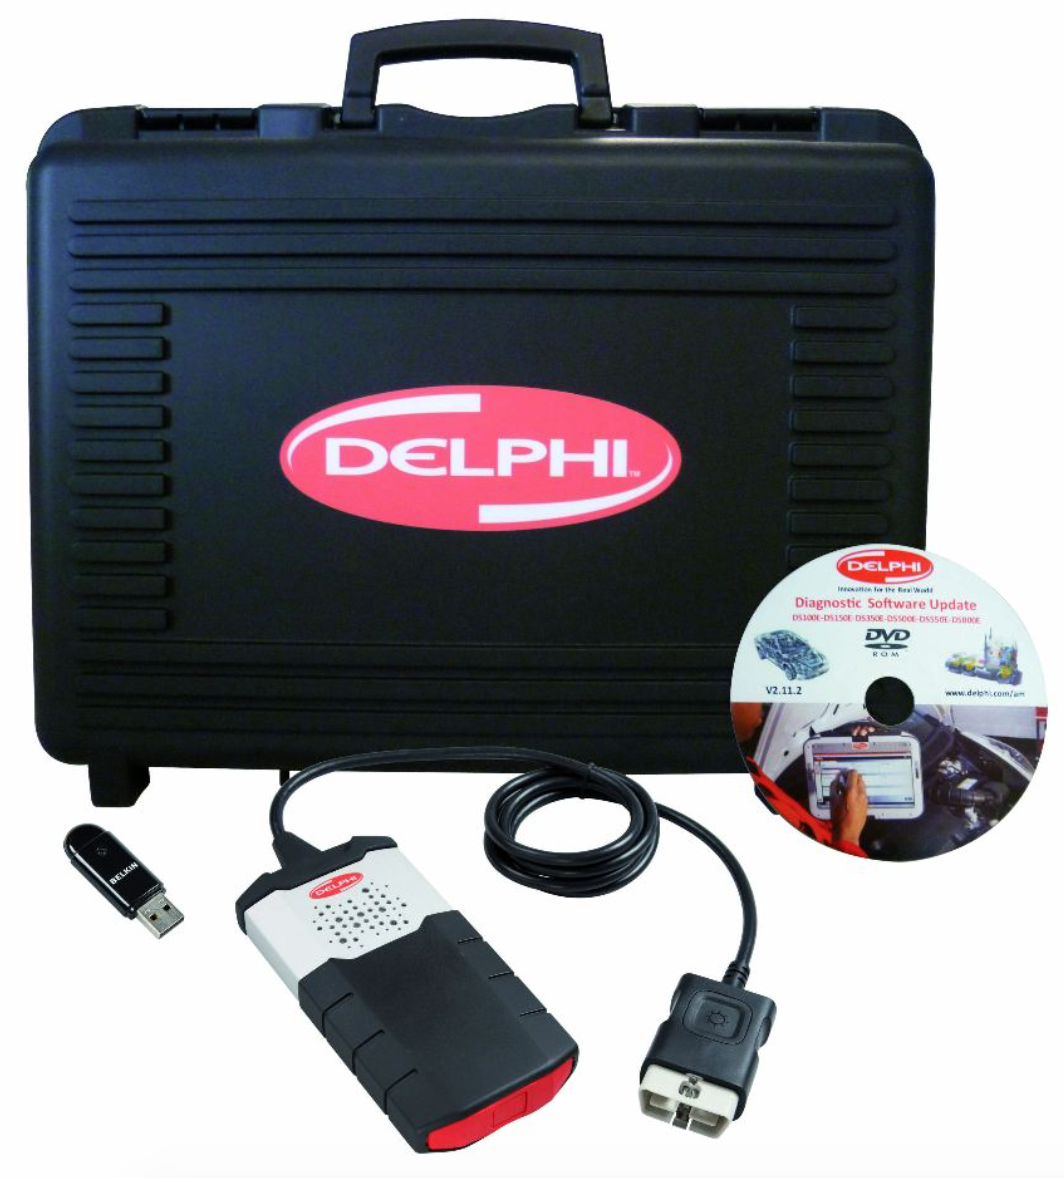 Delphi DS150 Diagnostic Anyone got / used one on LR's